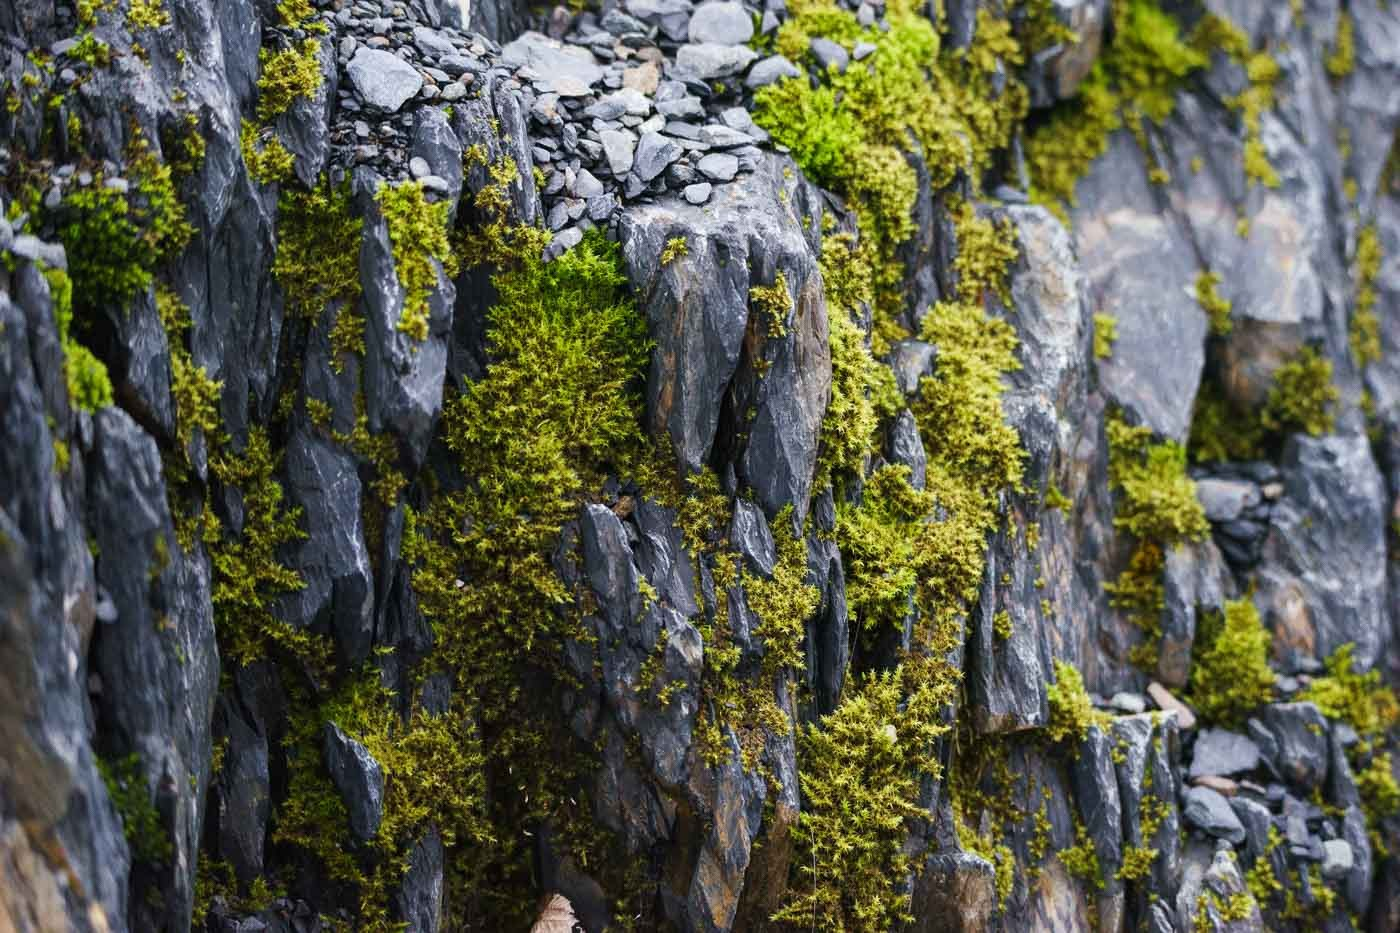 Moss in Alaska with the Tamron 150-600mm f/5-6.3